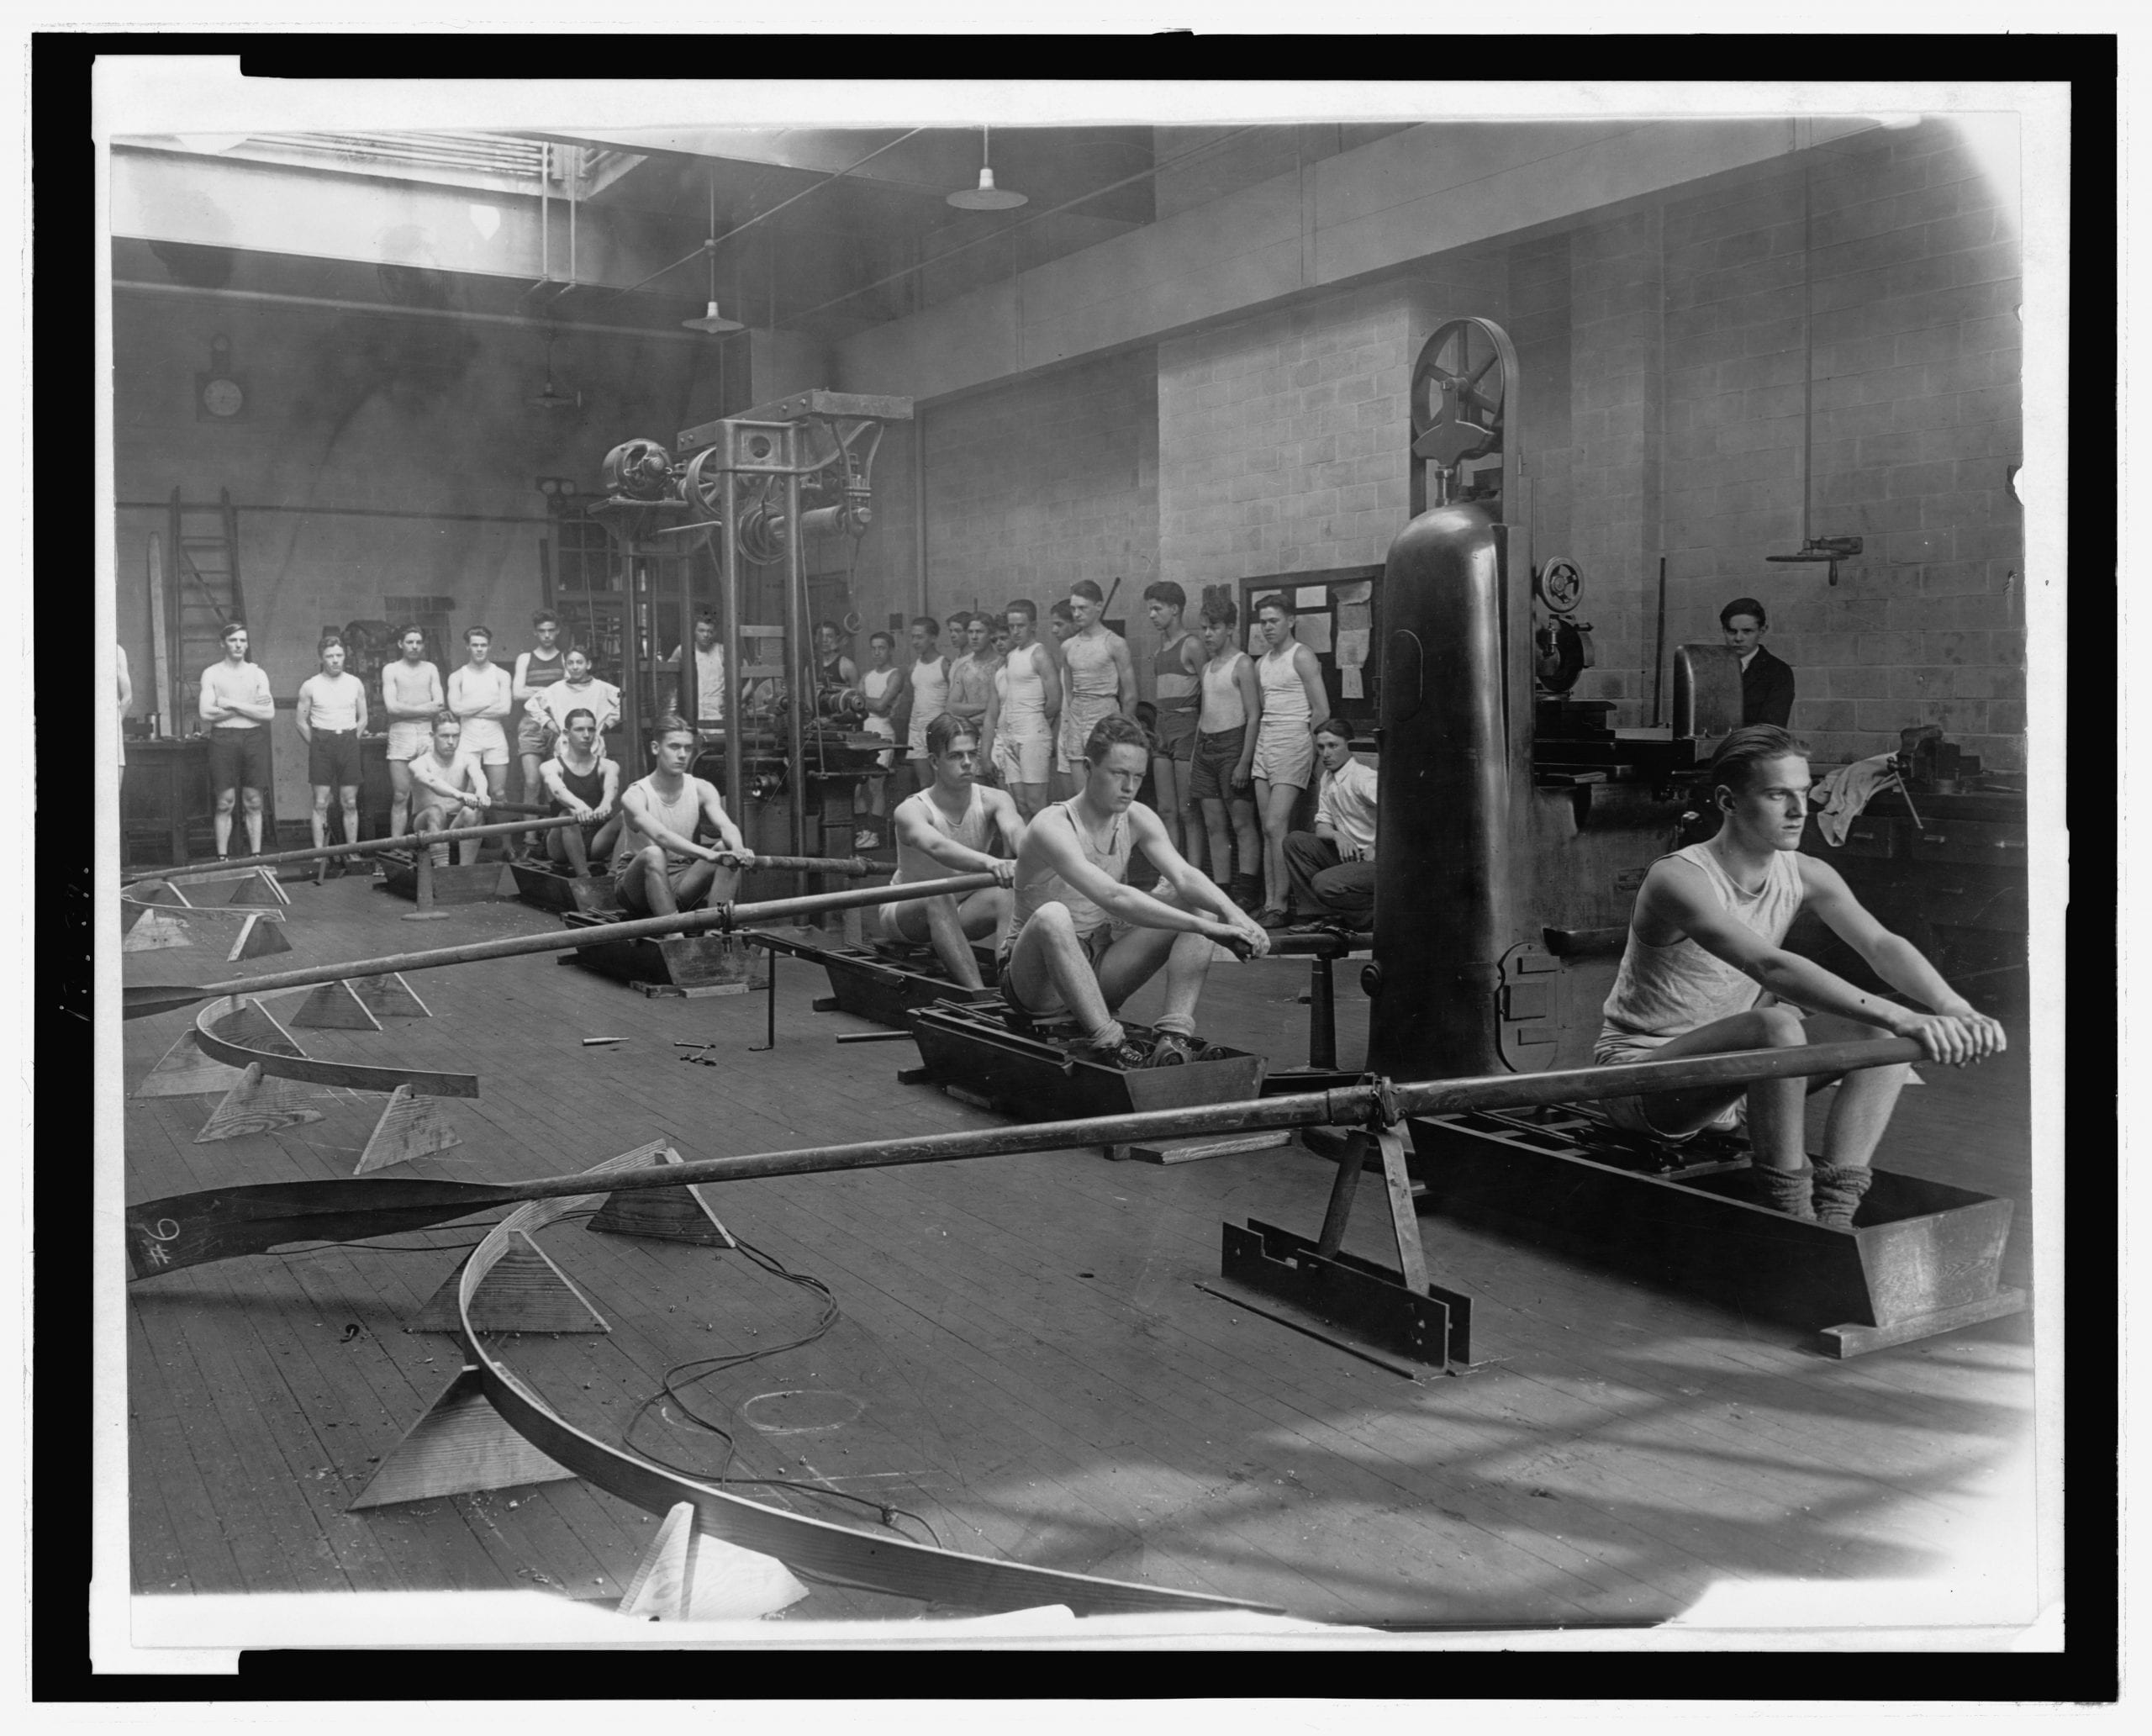 Photograph shows young men practicing rowing on stationary machines in a gynmasium as others wait their turn to practice. Pictured rowing are: Stanley Durkee, Arthur Dorton, Ronald Collauday, Donald Kline, William Stewart and Elkin Hale. (1919)